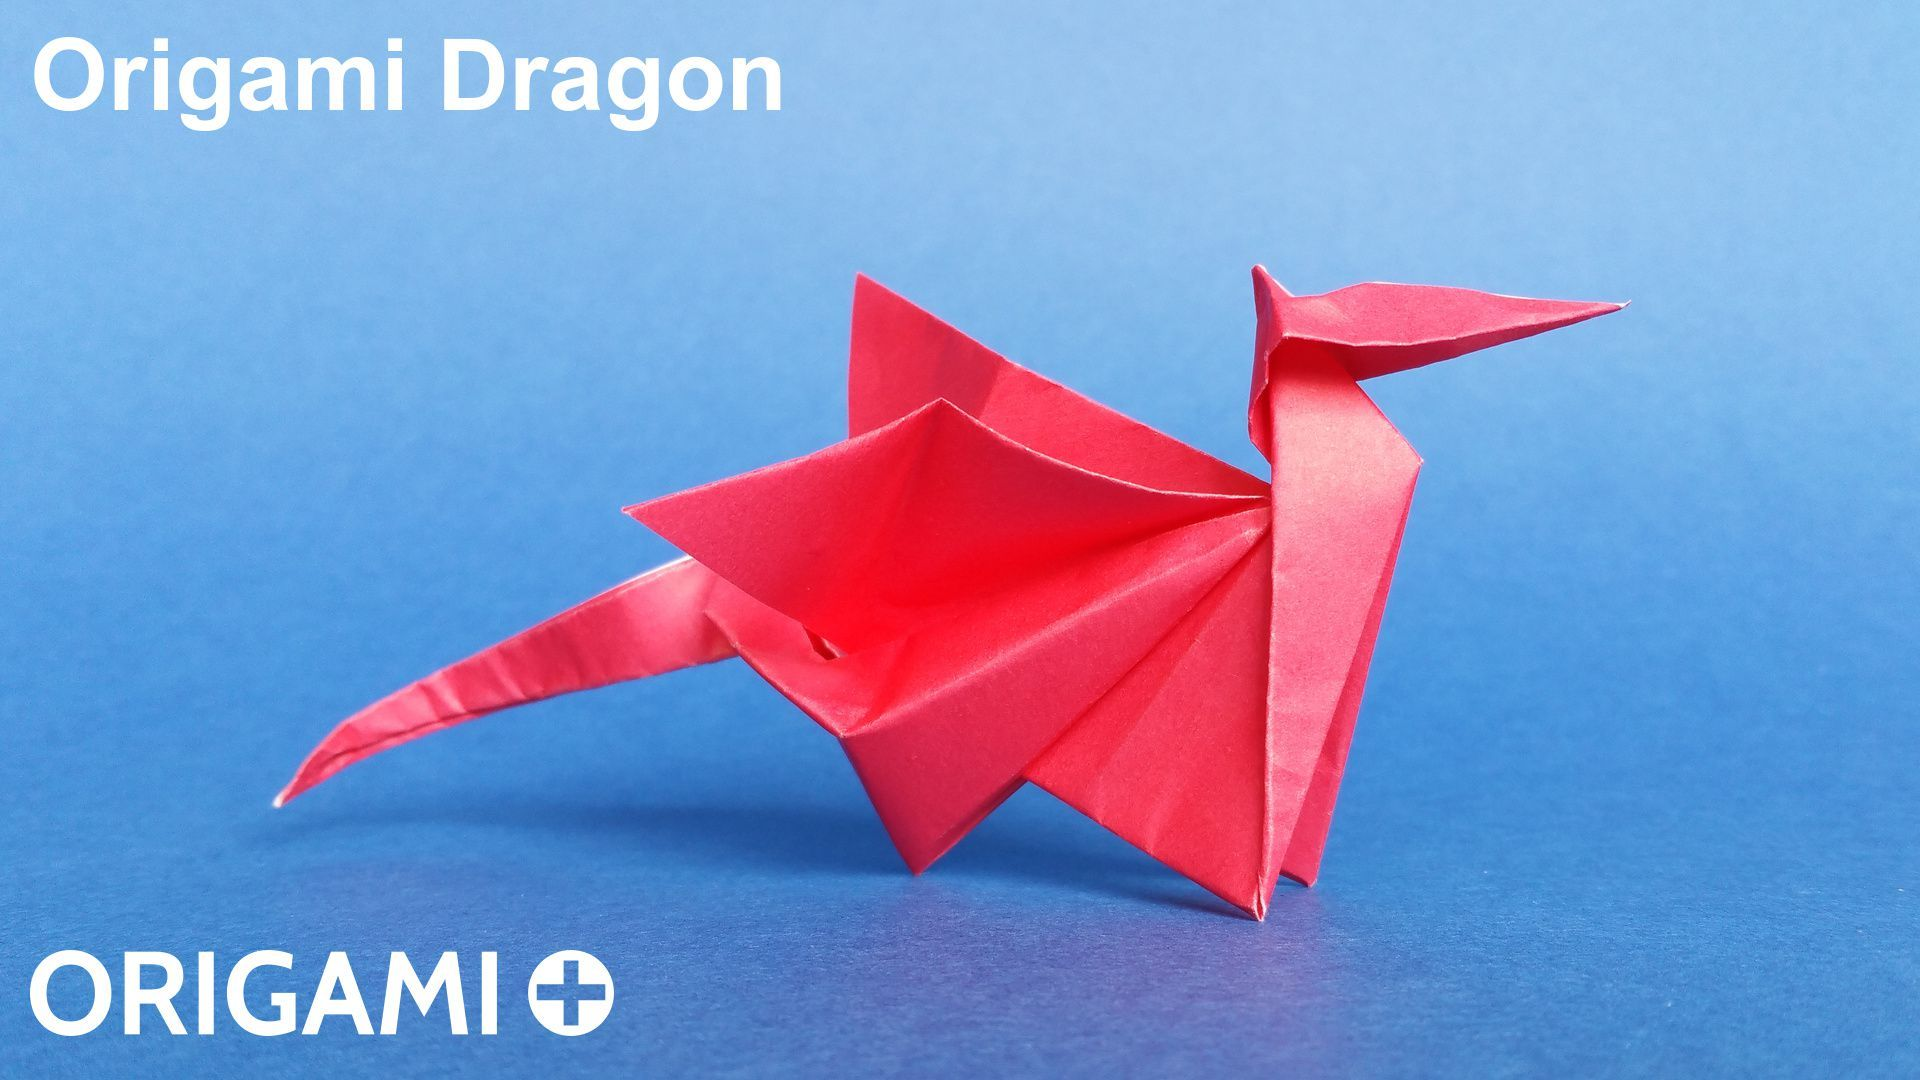 Easy origami dragon tutorial learn how to make an easy but cool easy origami dragon tutorial learn how to make an easy but cool origami dragon by following the instructions of this tutorial jeuxipadfo Image collections